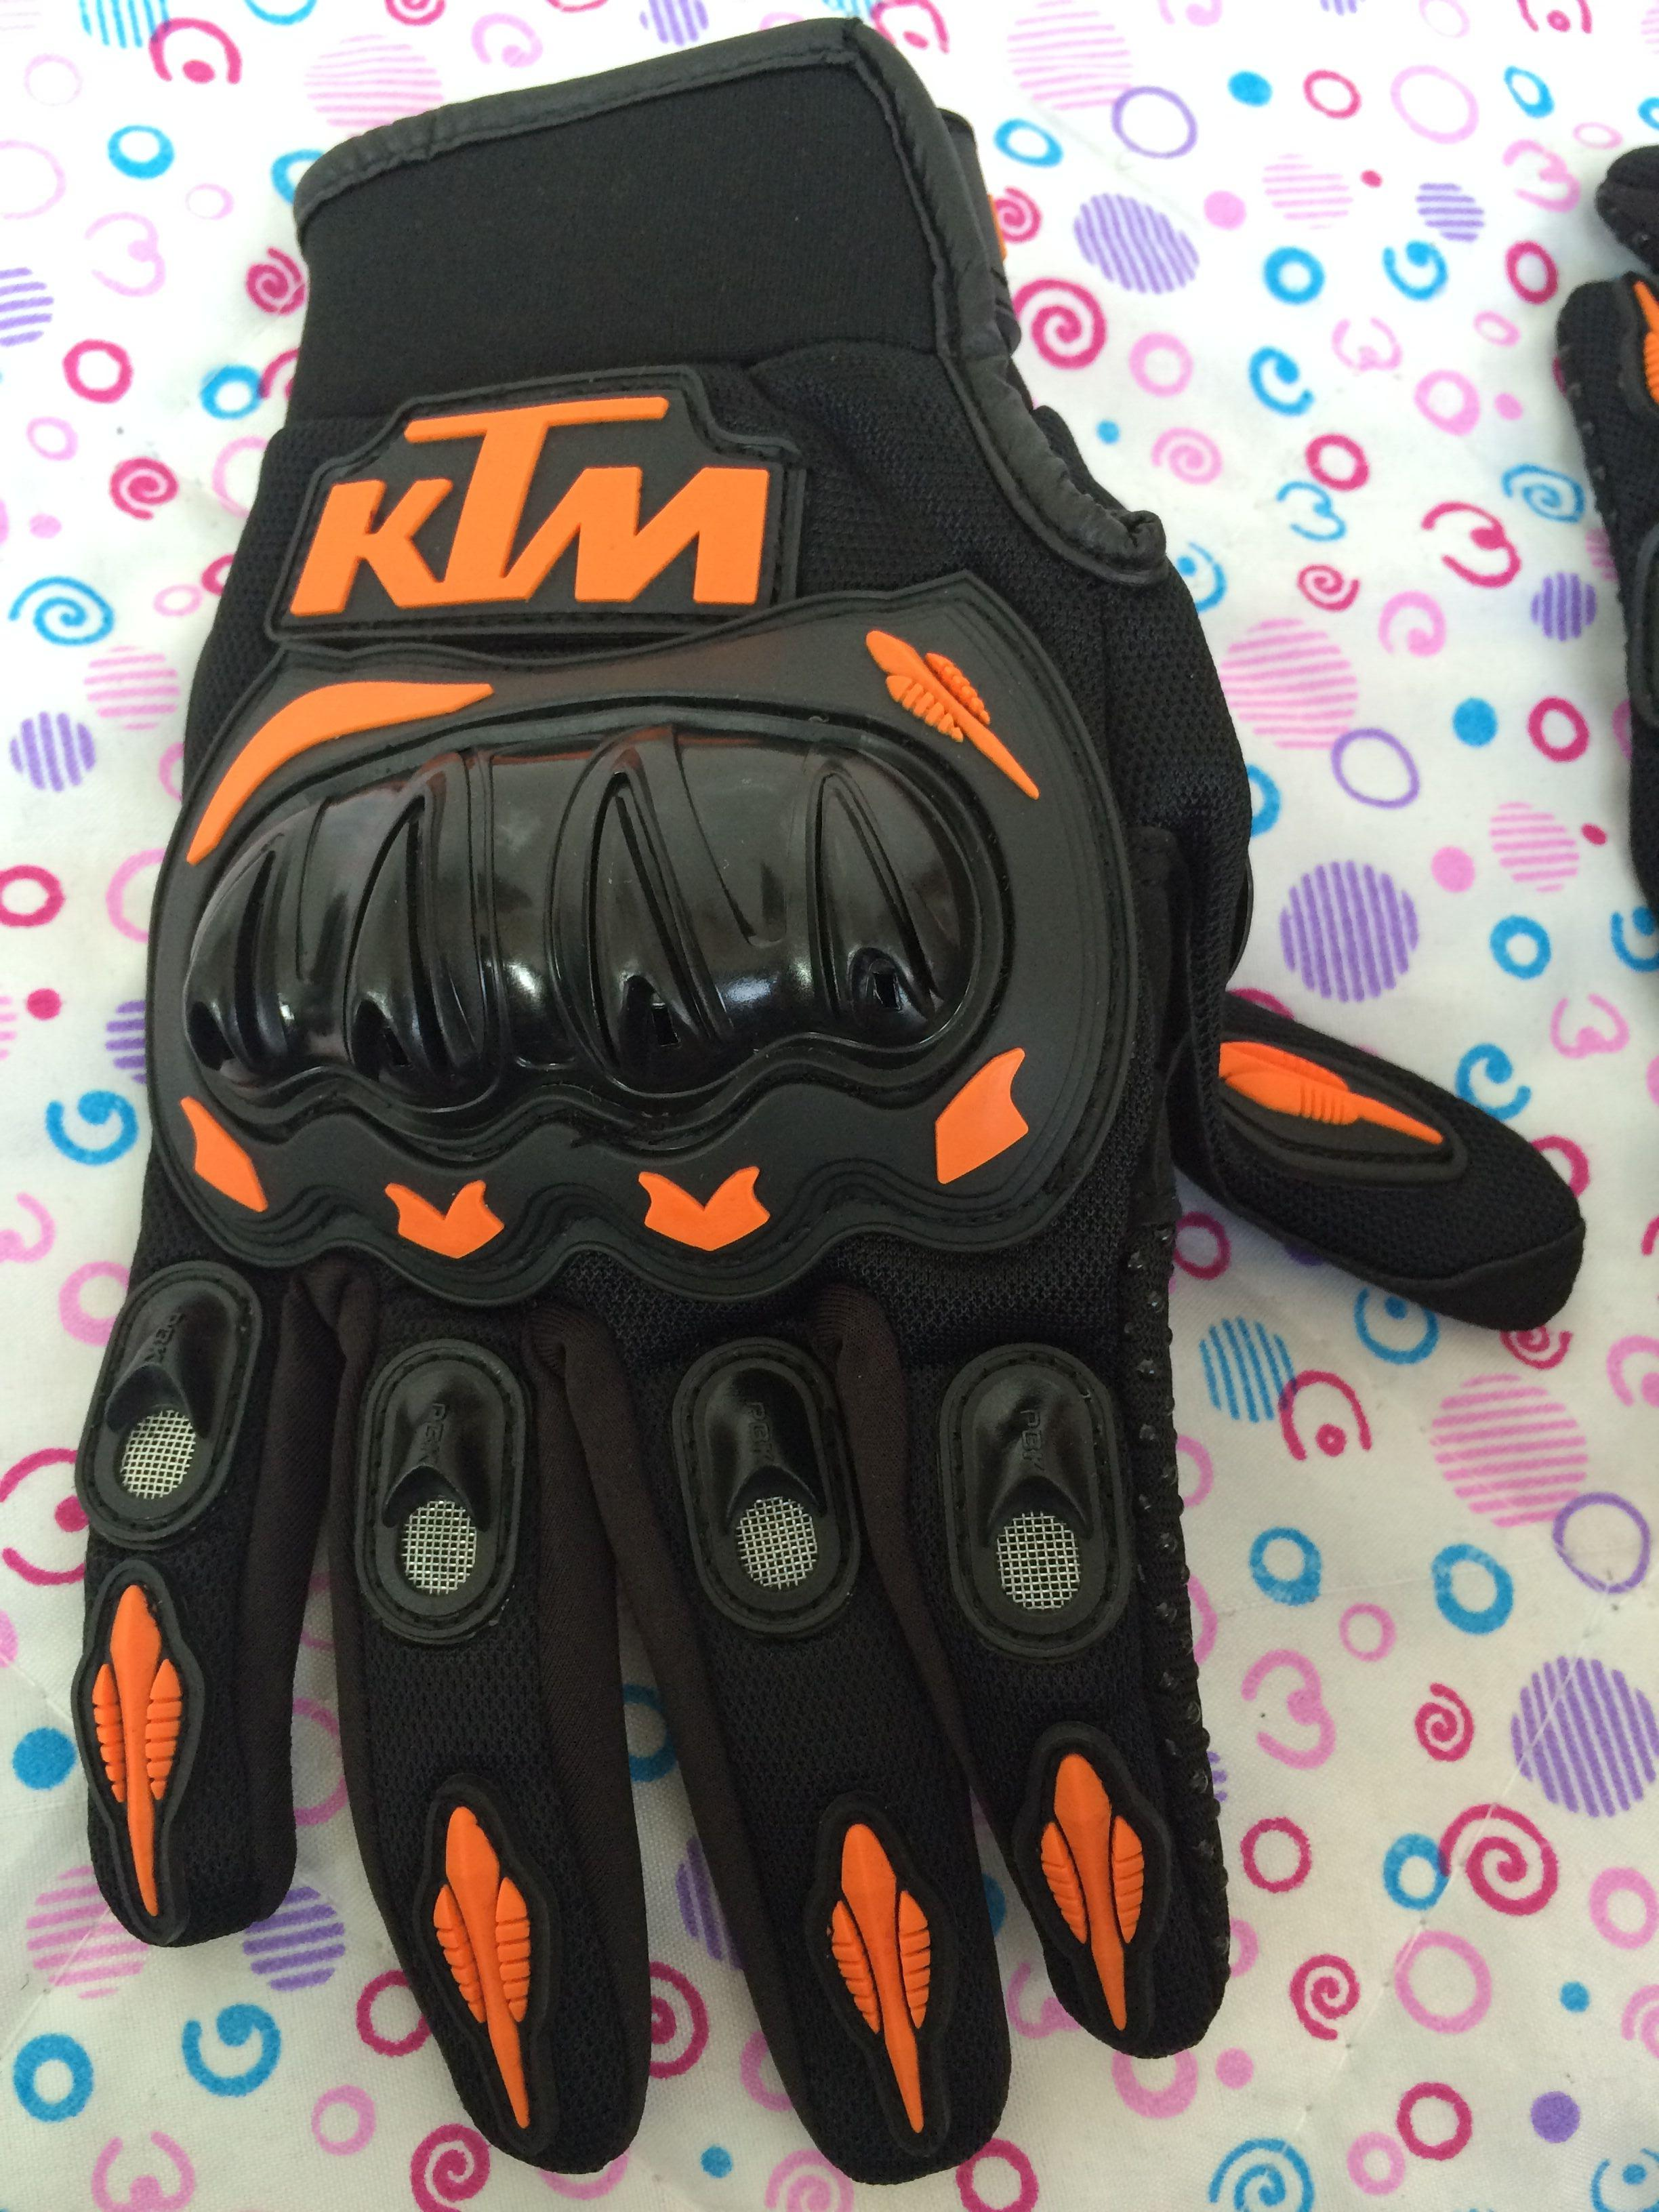 Motorcycle gloves ratings - Hotsale New 2014 Ktm Race Comp Gloves Motorcycle Motocross Cross Country Full Finger Leather Glove